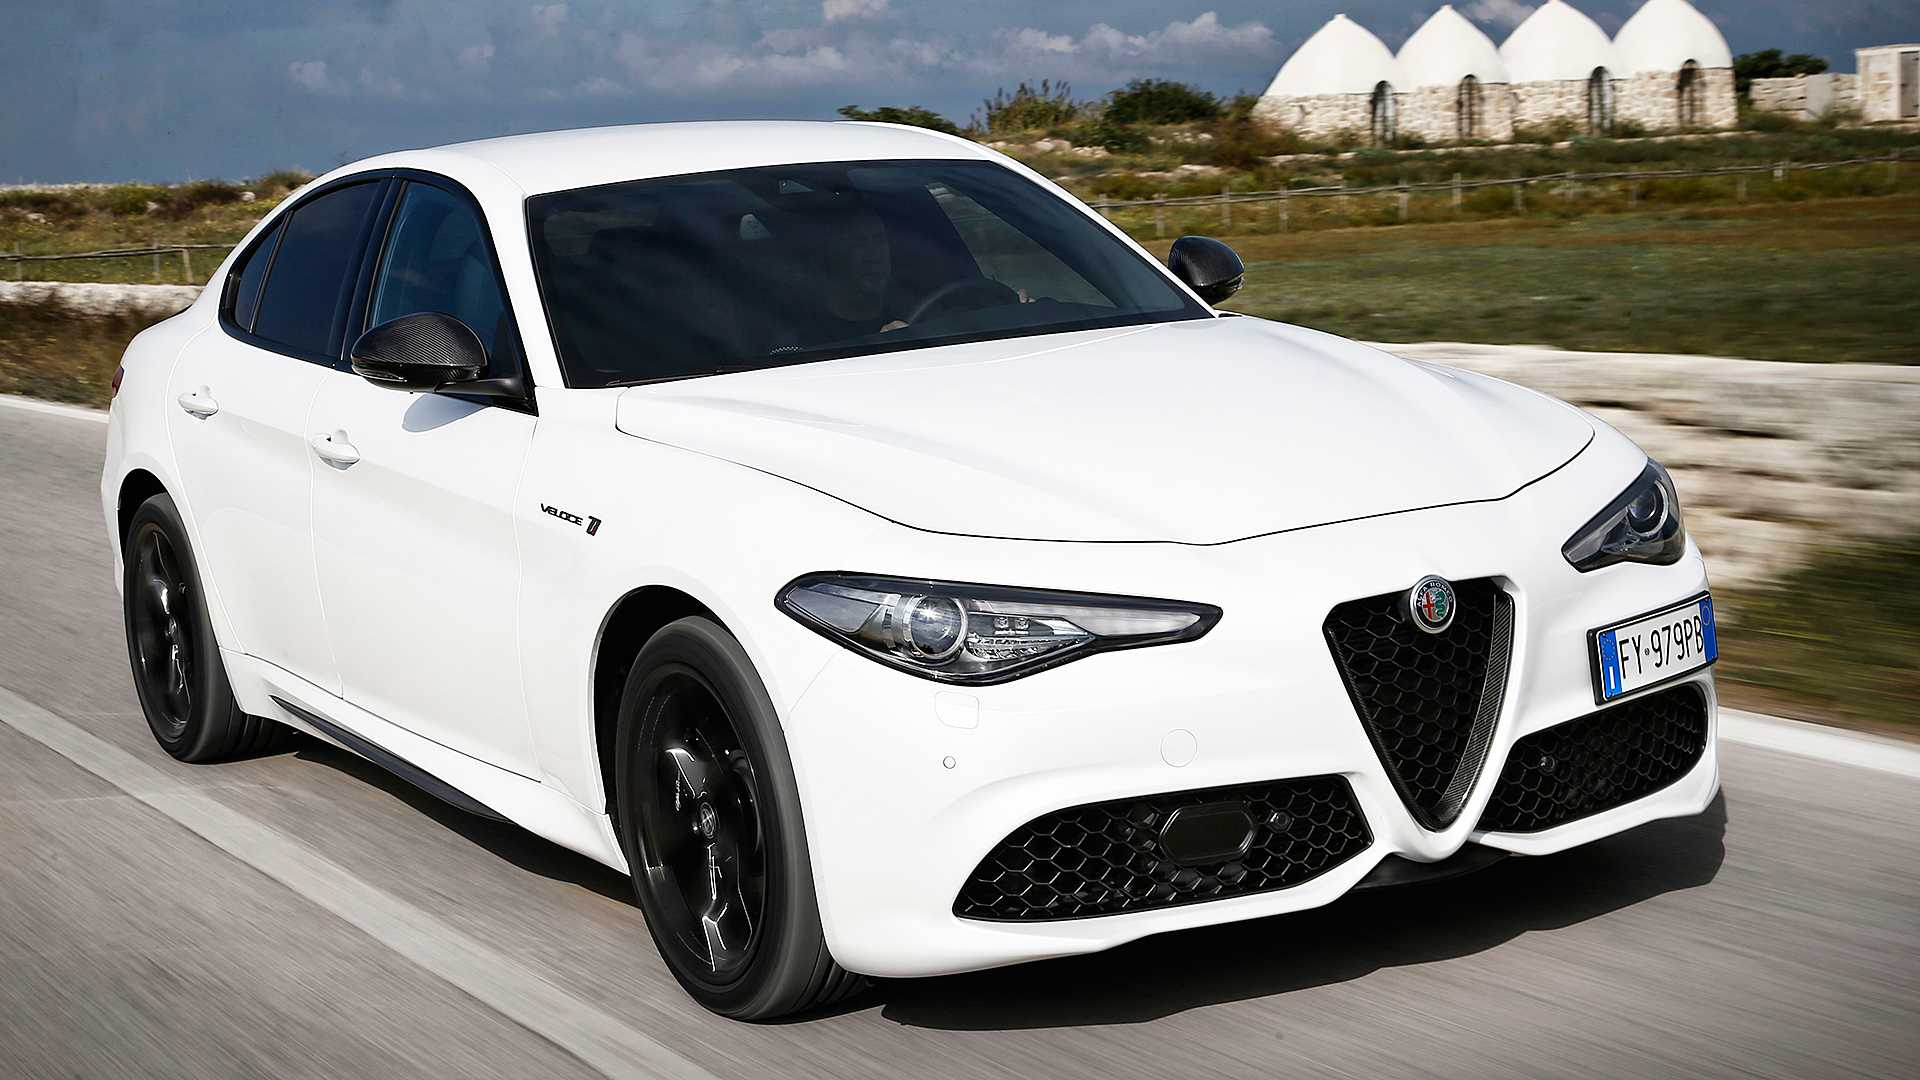 alfa-romeo-giulia-stelvio-updated-for-2020-model-year_13